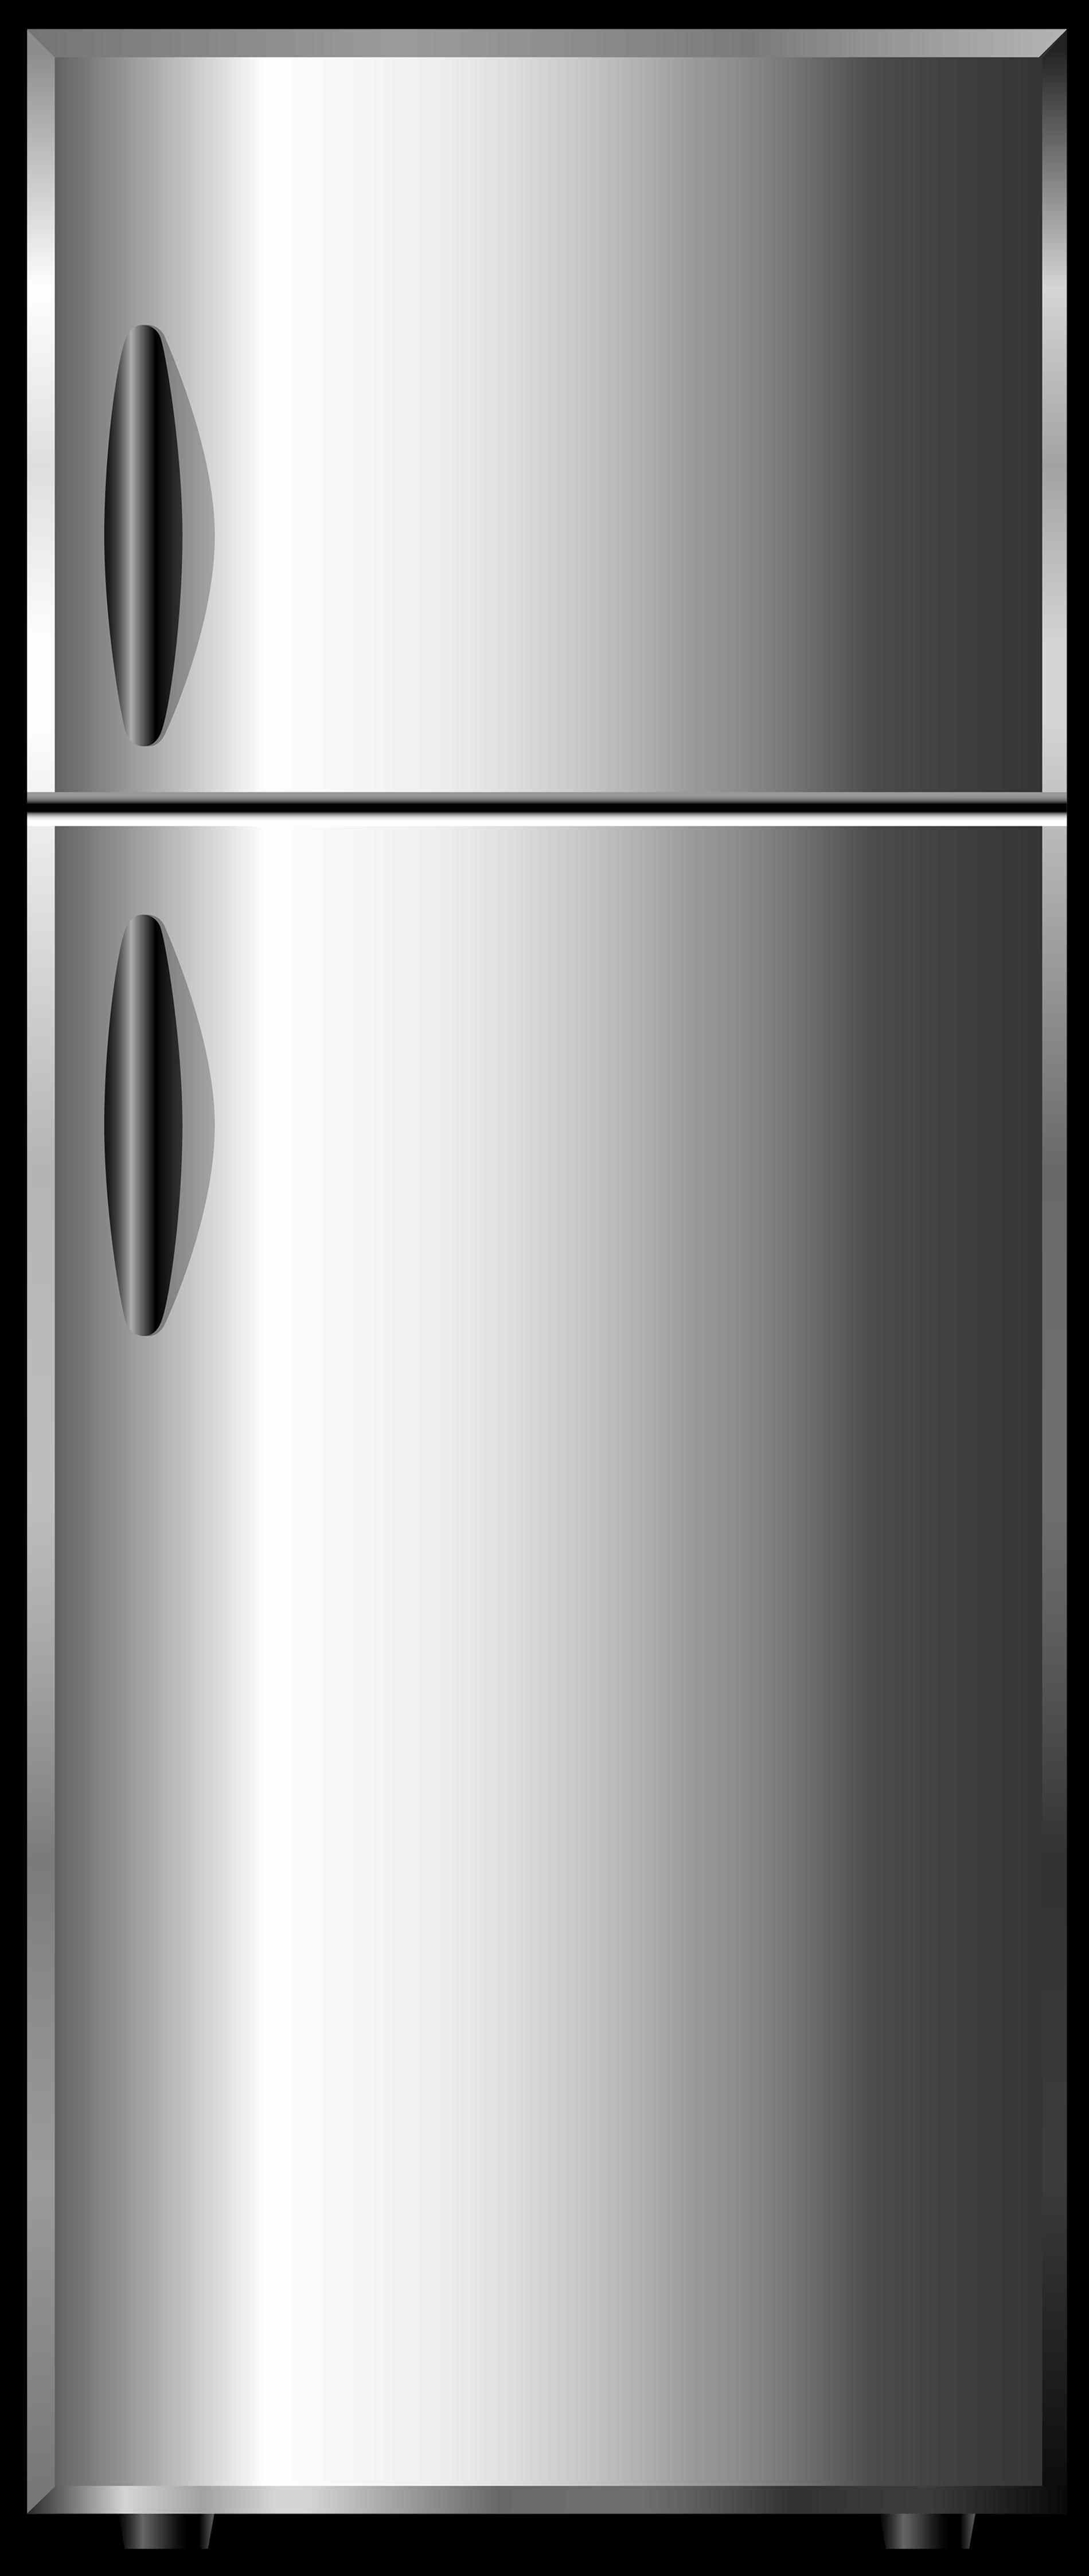 fridge Art vector illustration grey opened refrigerator stock jpg